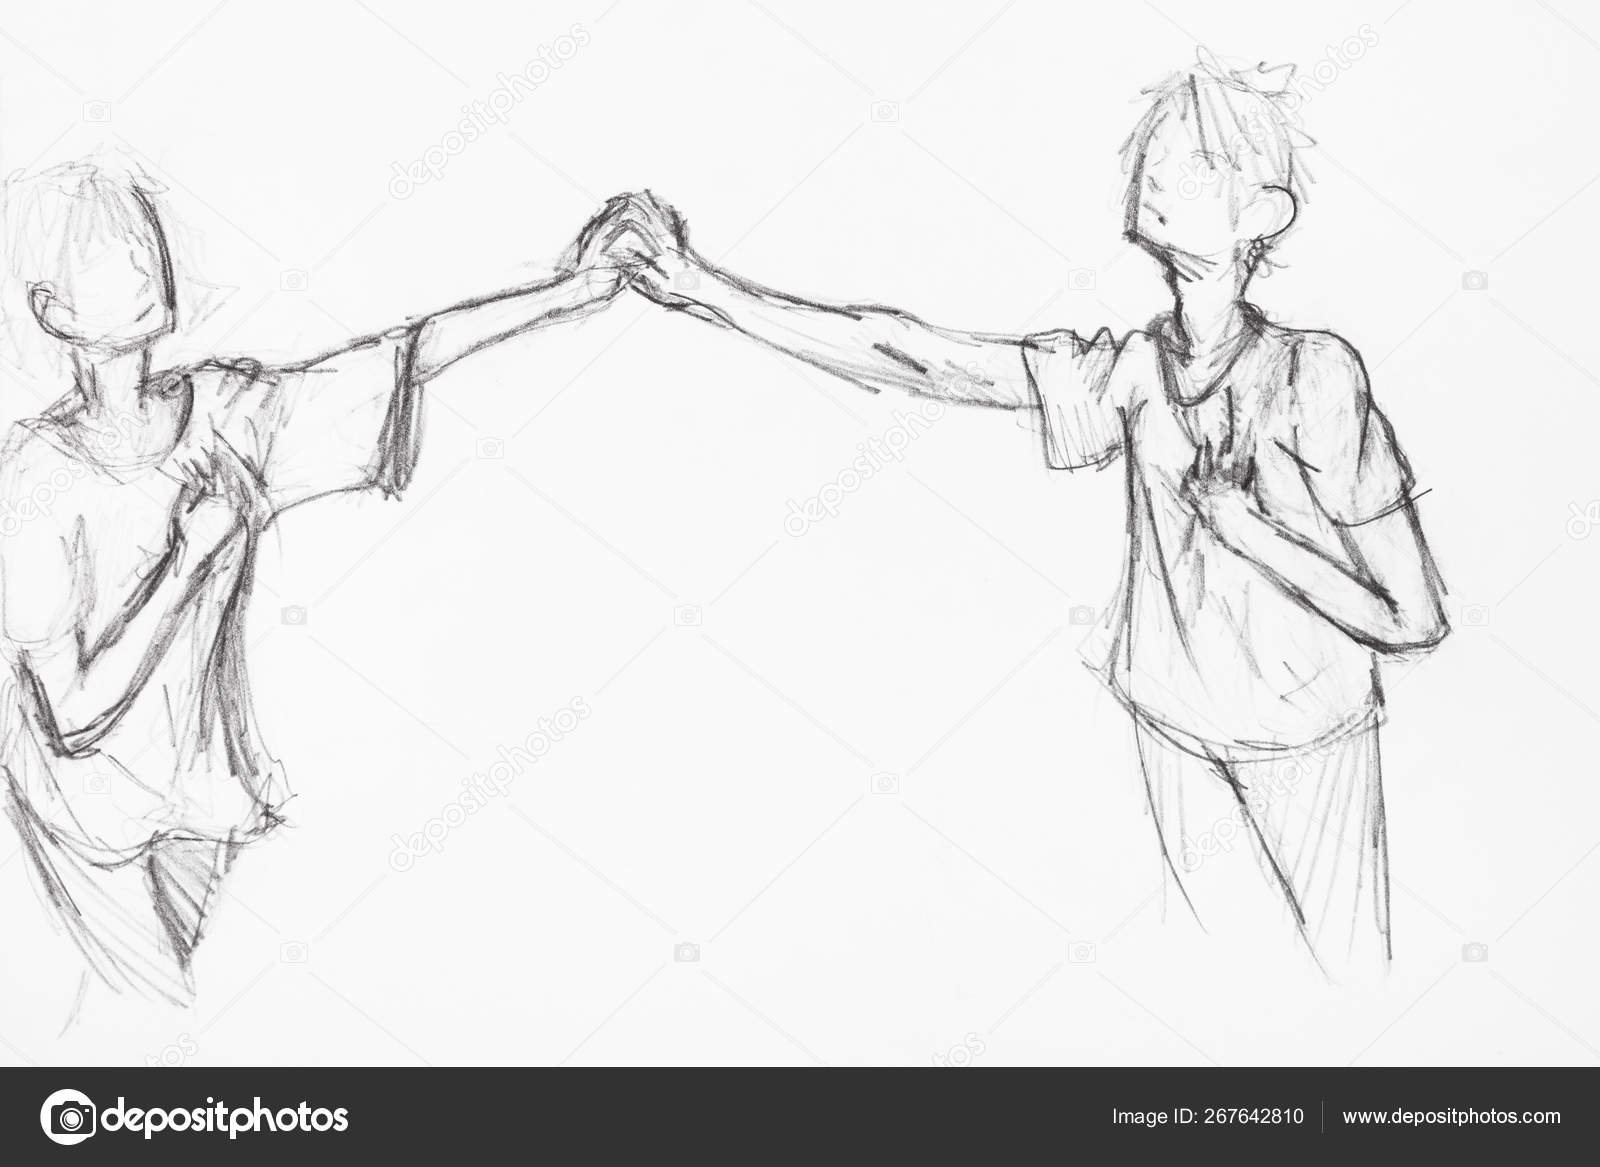 Drawings Pencil Drawing Of Couple Holding Hands Sketch Of